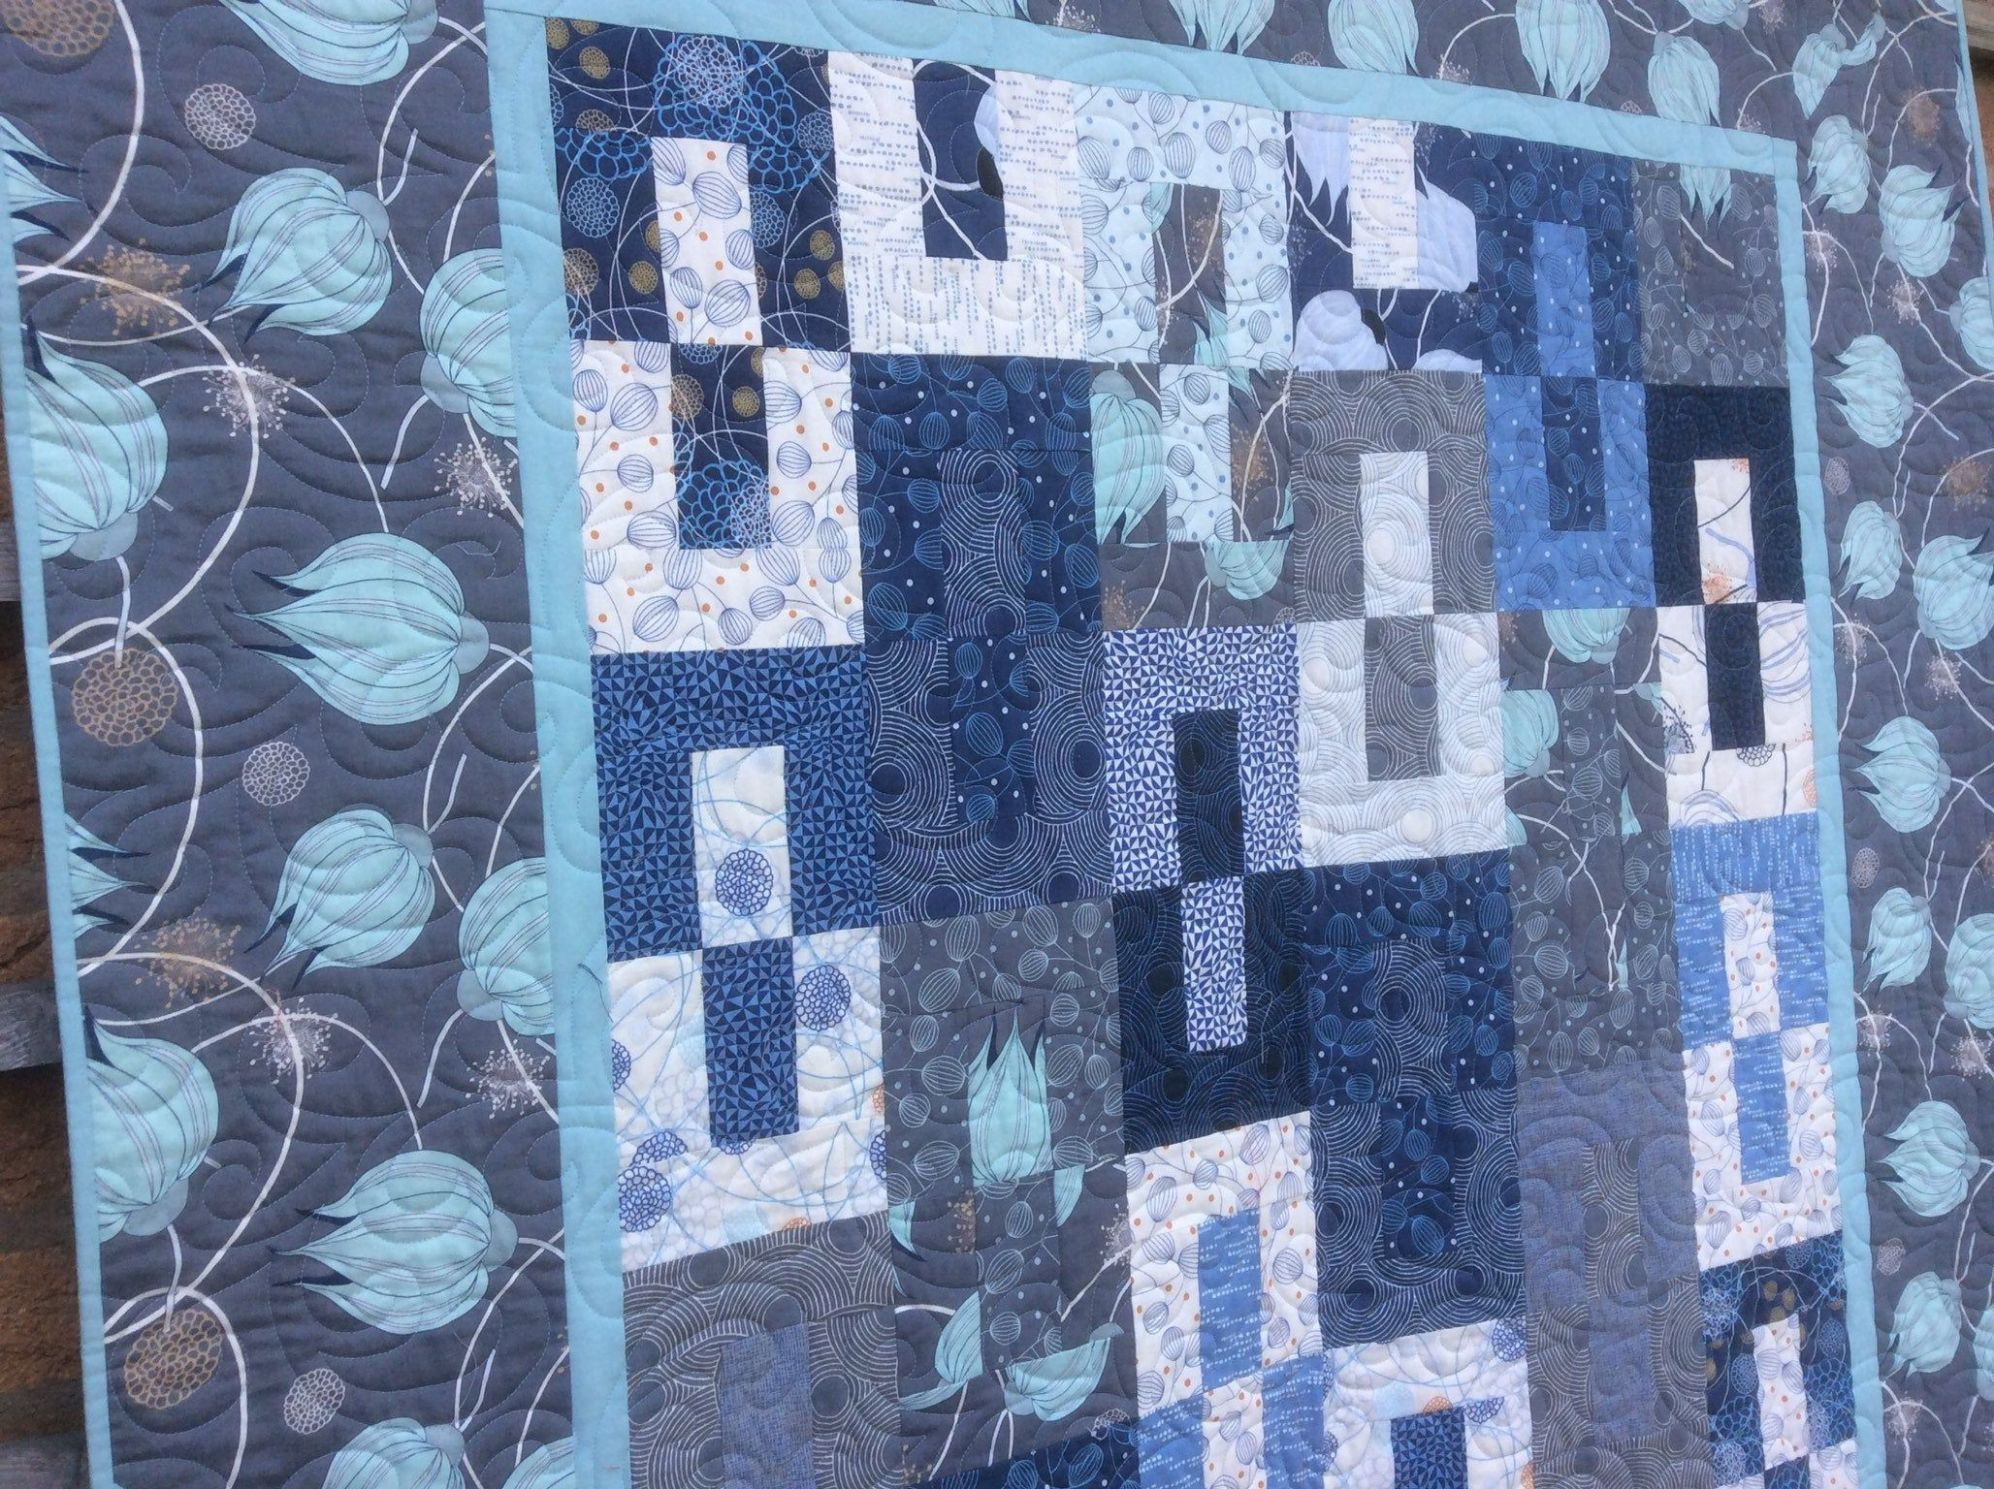 Pin on Handmade Quilts and Gifts - home decor quilts